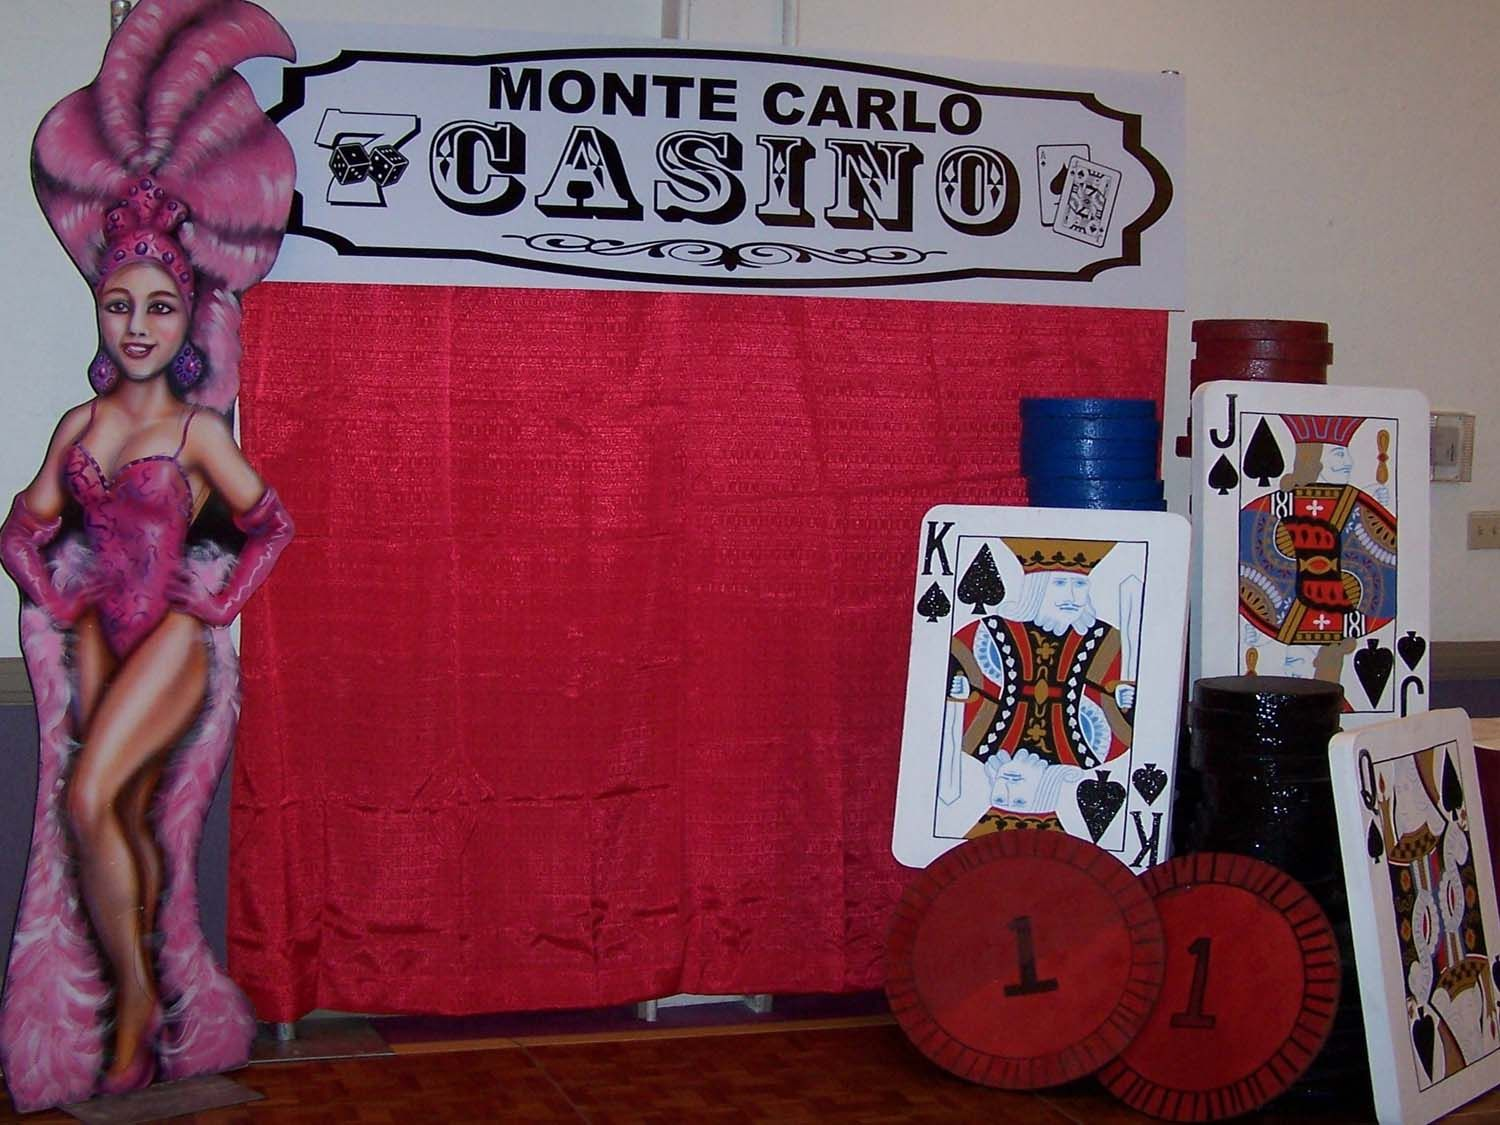 casino decoration ideas casino theme party ideas casino party dj s caterers - Casino Party Decorations